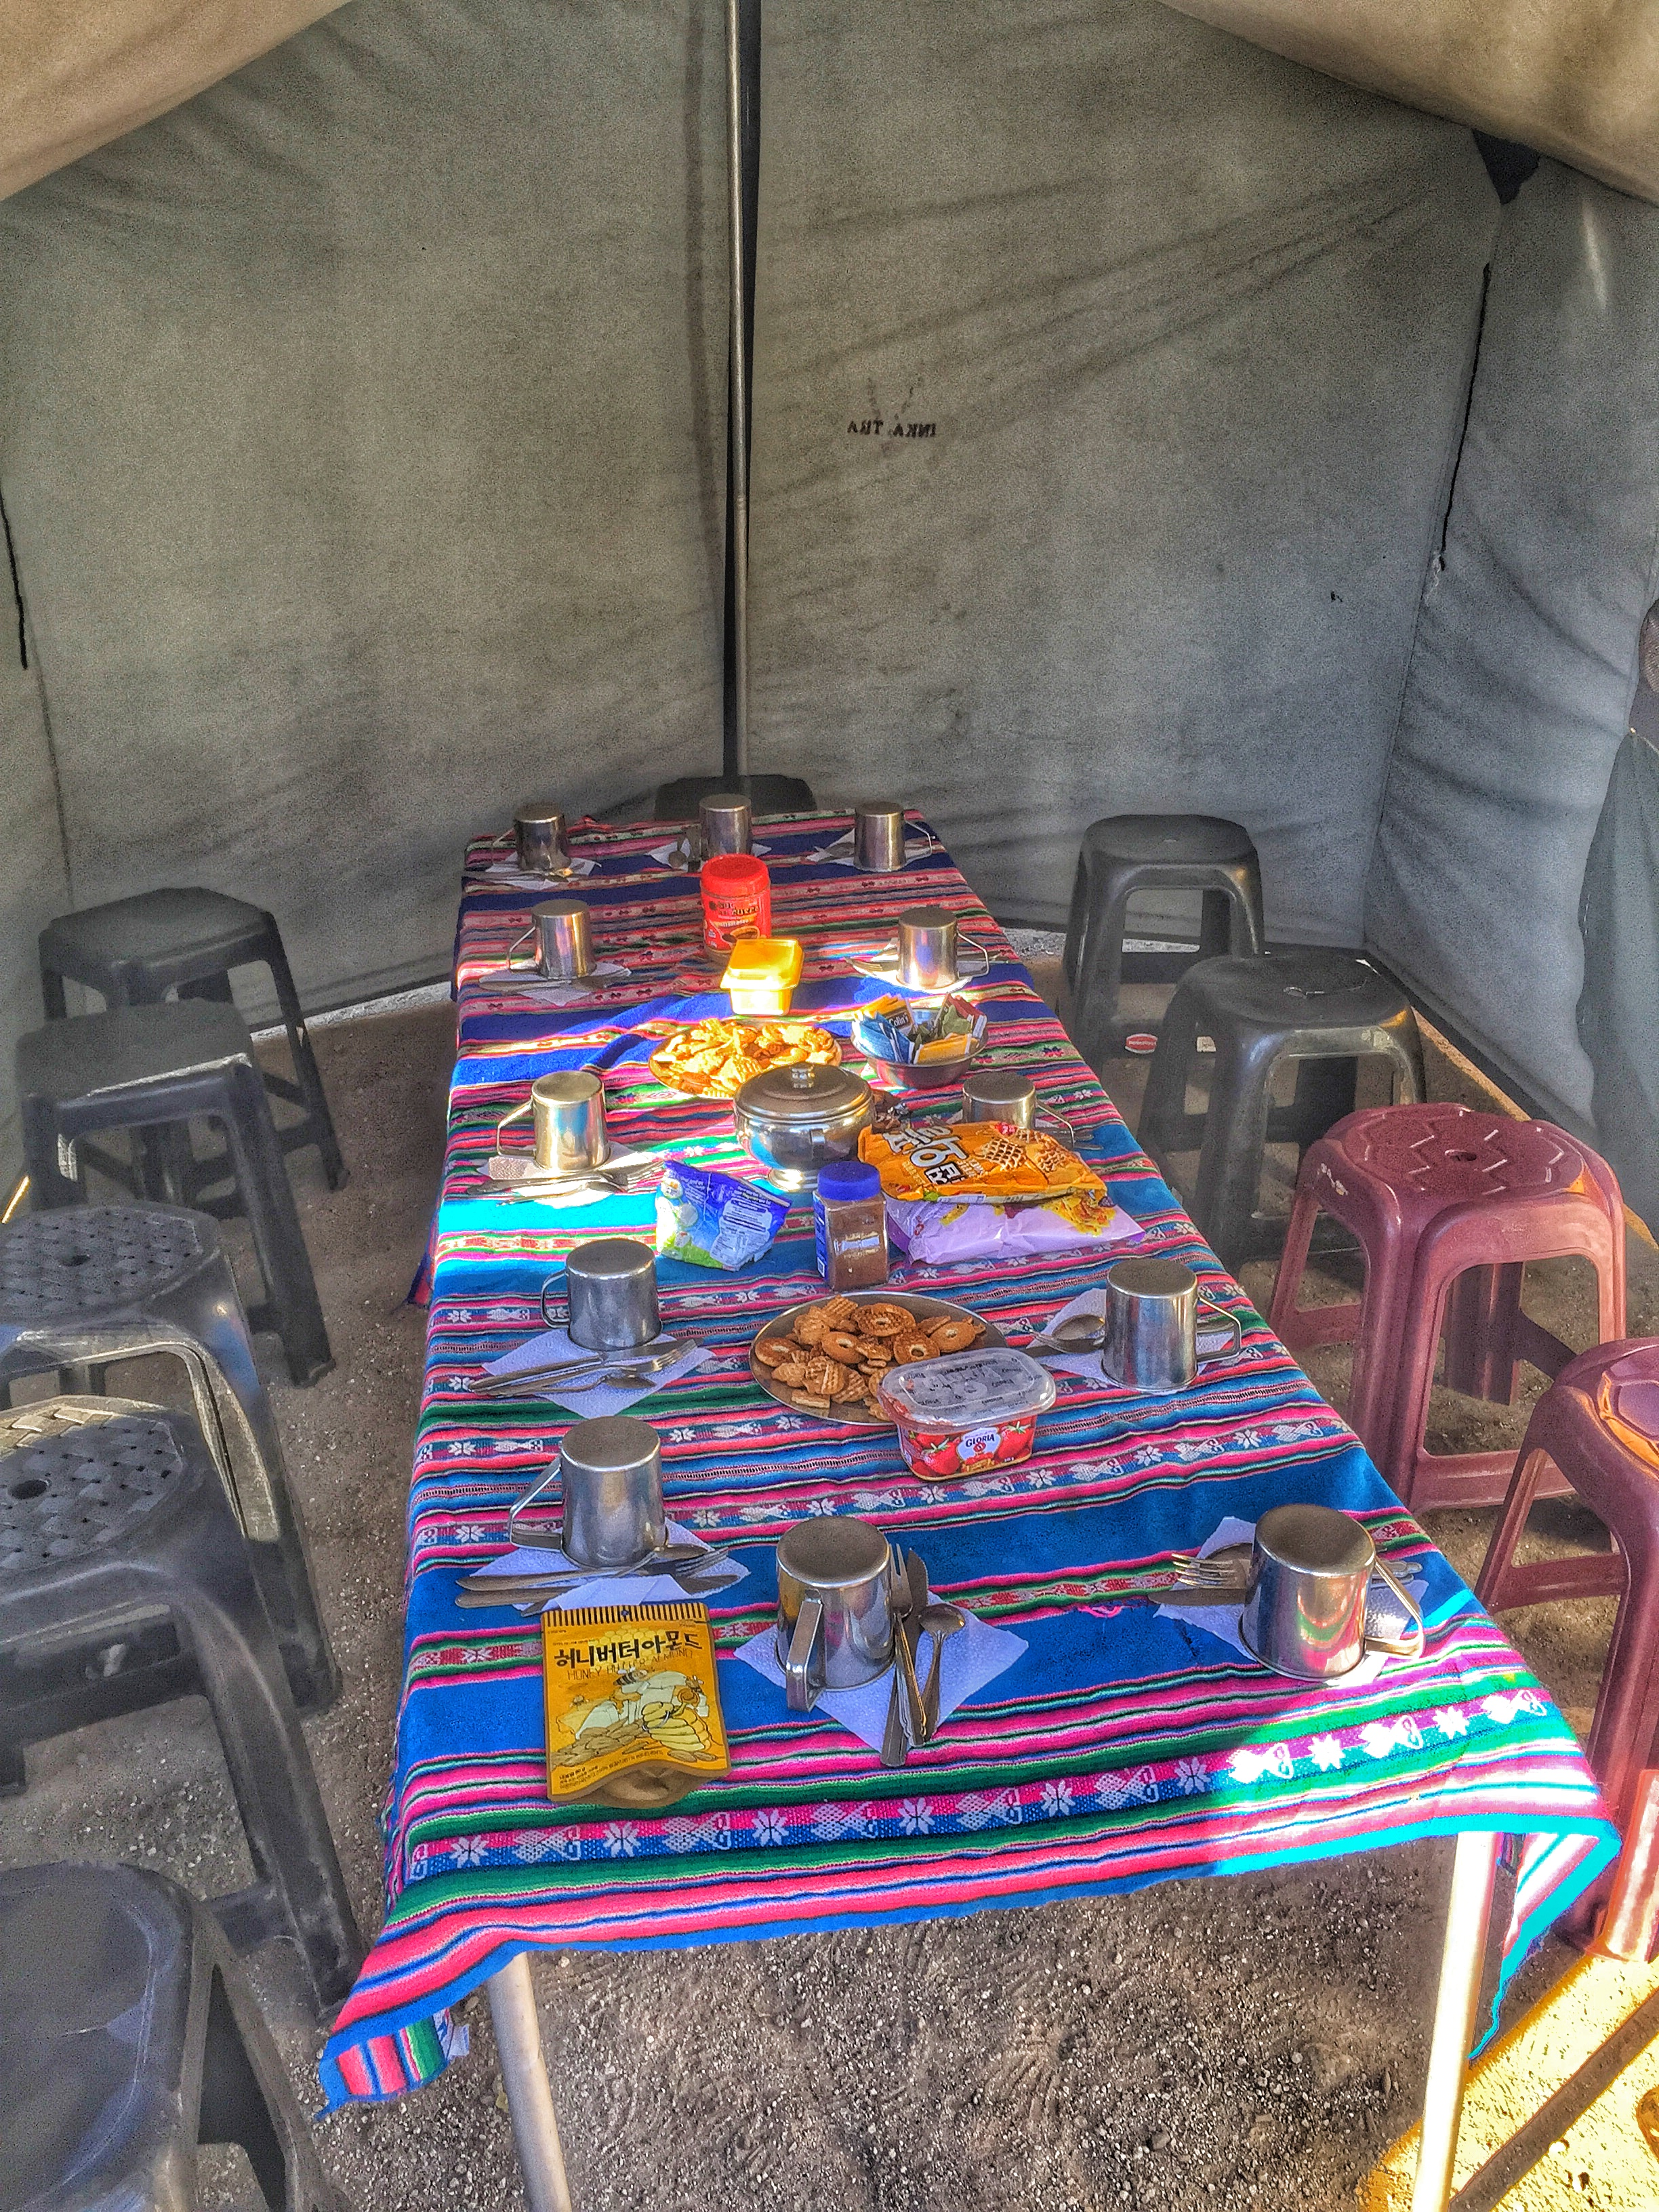 We arrived at the campsite early and the crew prepared snacks for us.